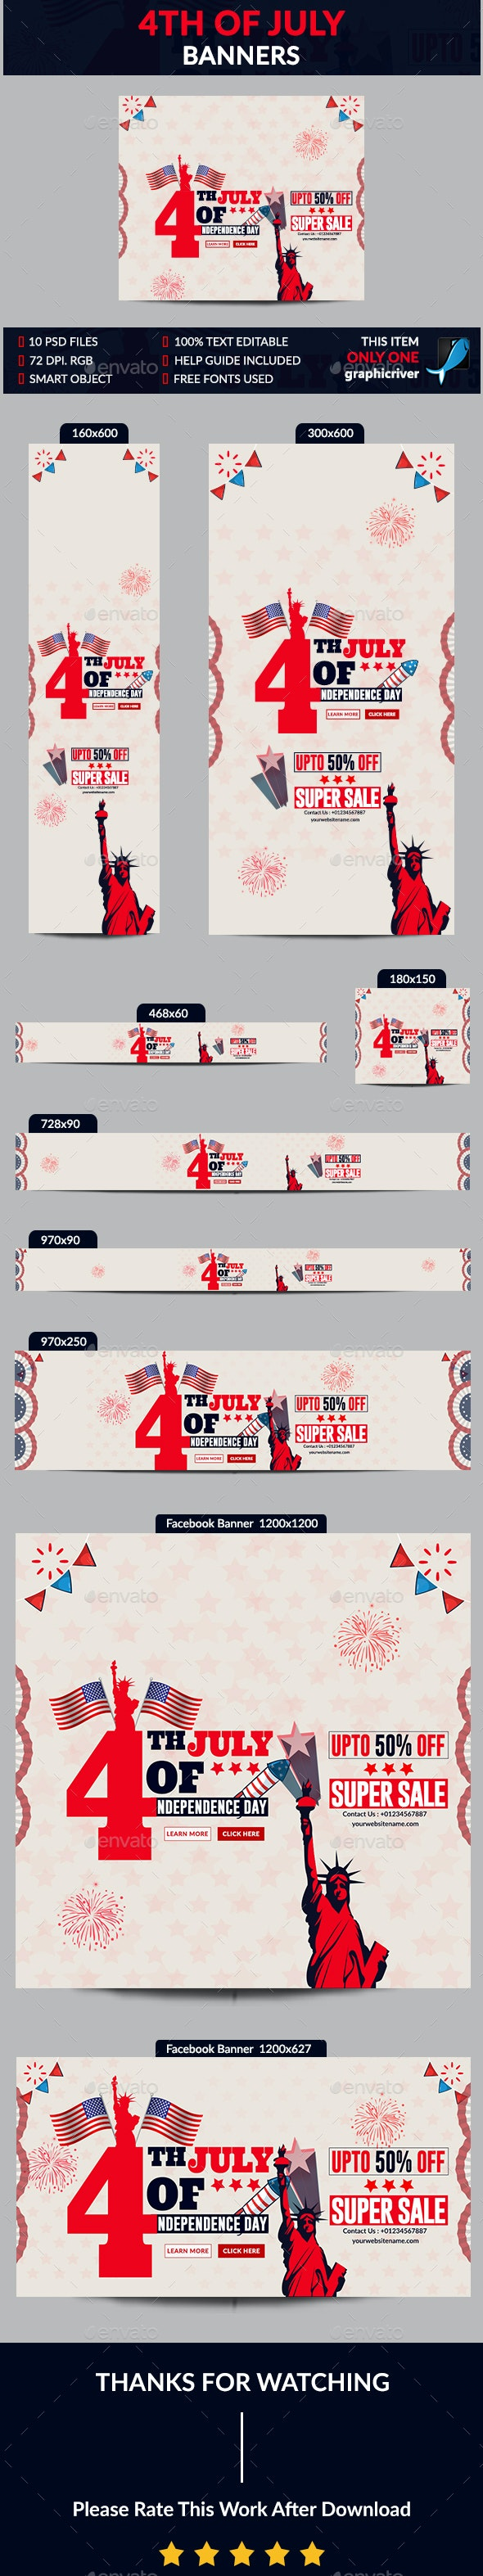 4th of July Web Banner - Banners & Ads Web Elements